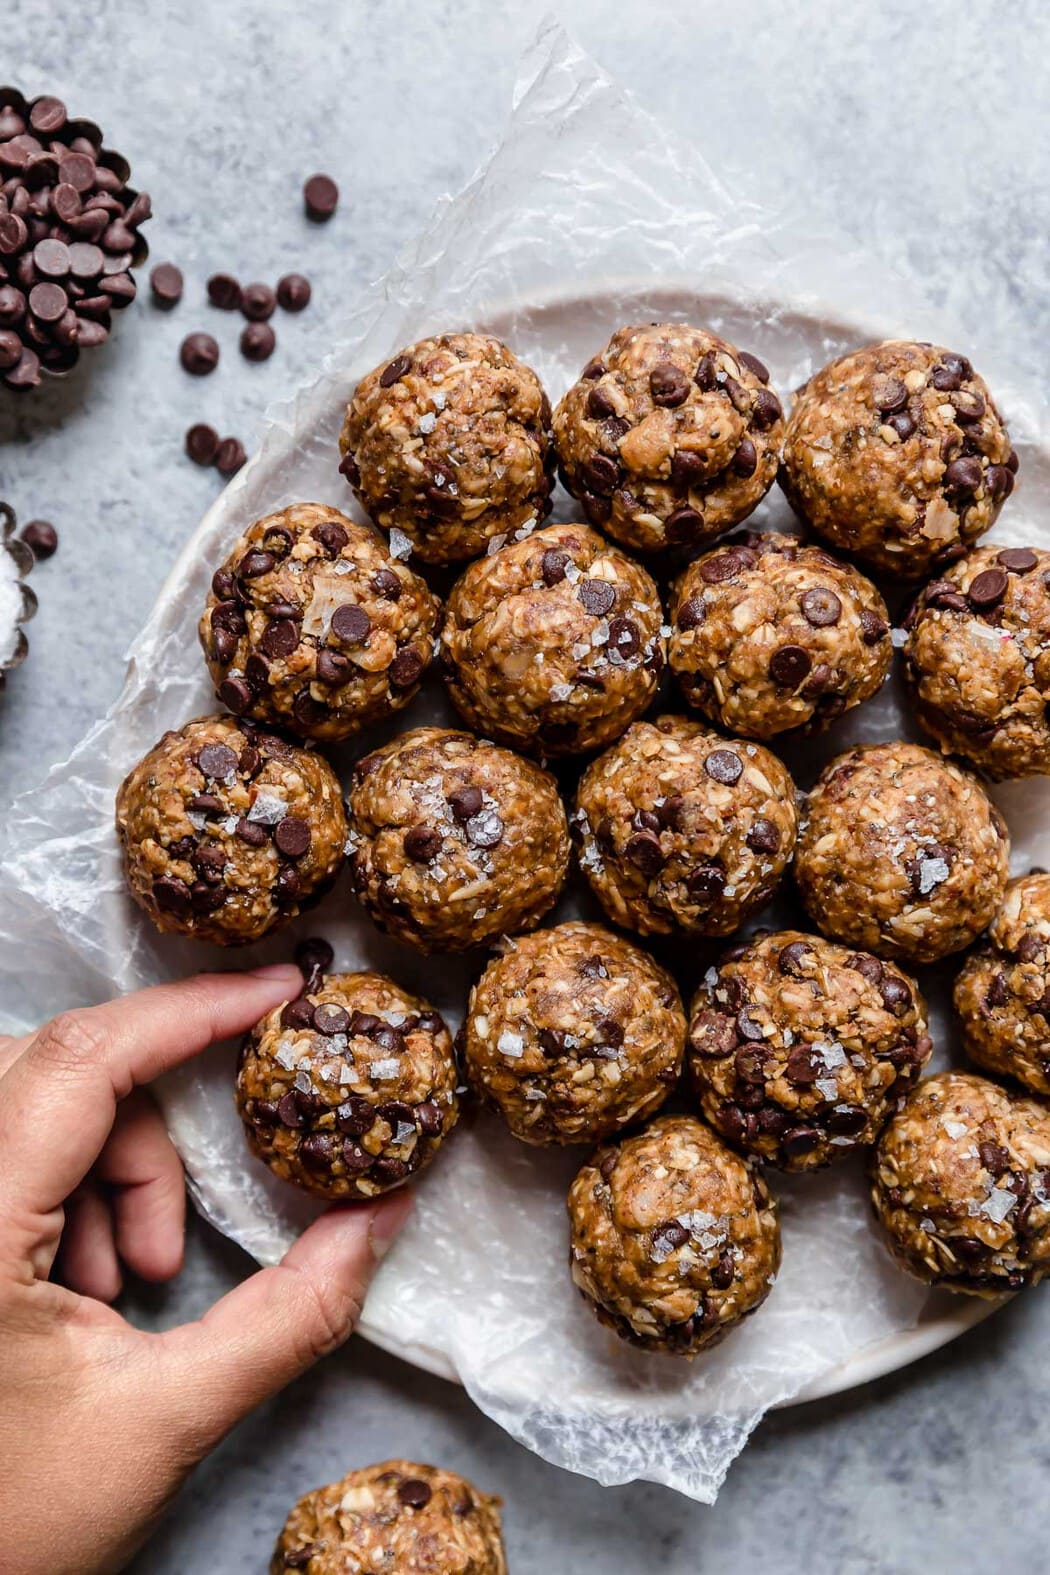 Peanut Butter Oatmeal Balls on a platter with a hand grabbing one of the bites.